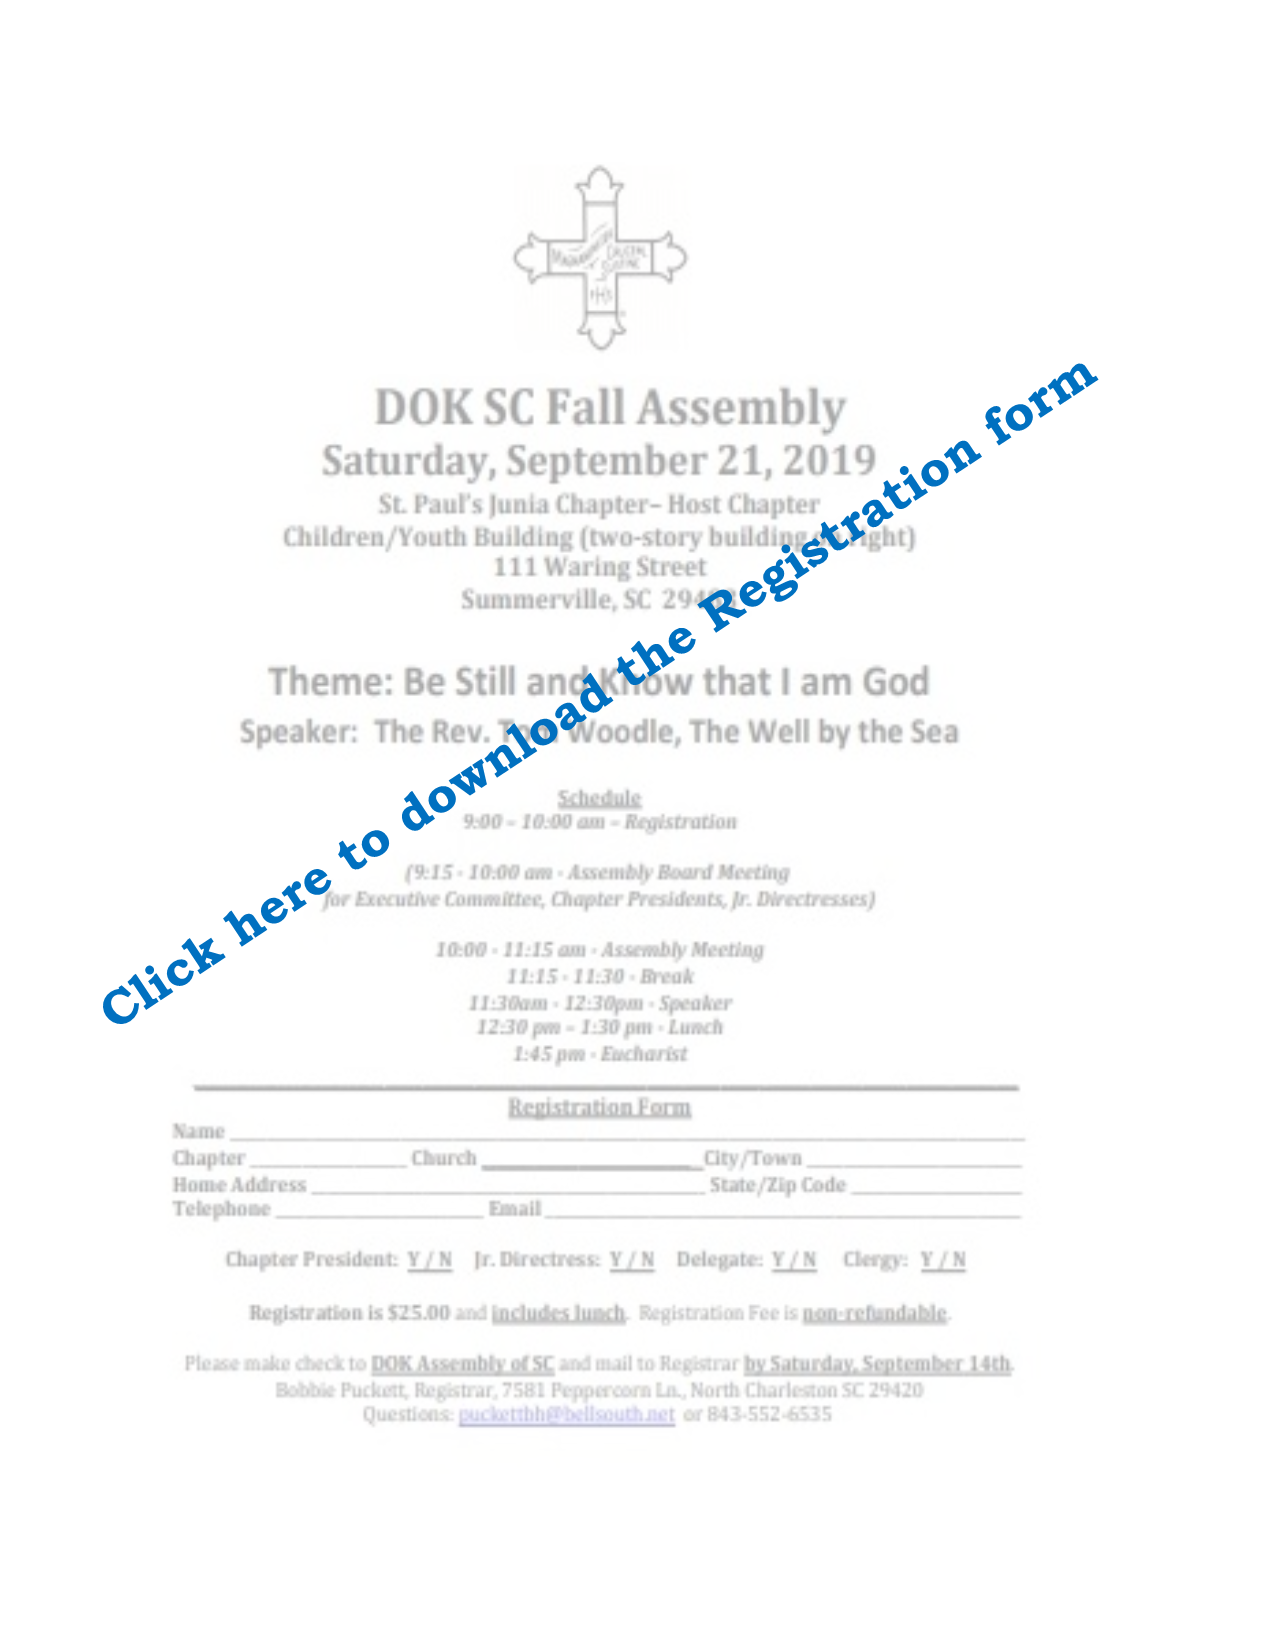 The Fall Assembly will be at St. Pauls Church in Summerville on September 21, 2019 starting at 900 AM.